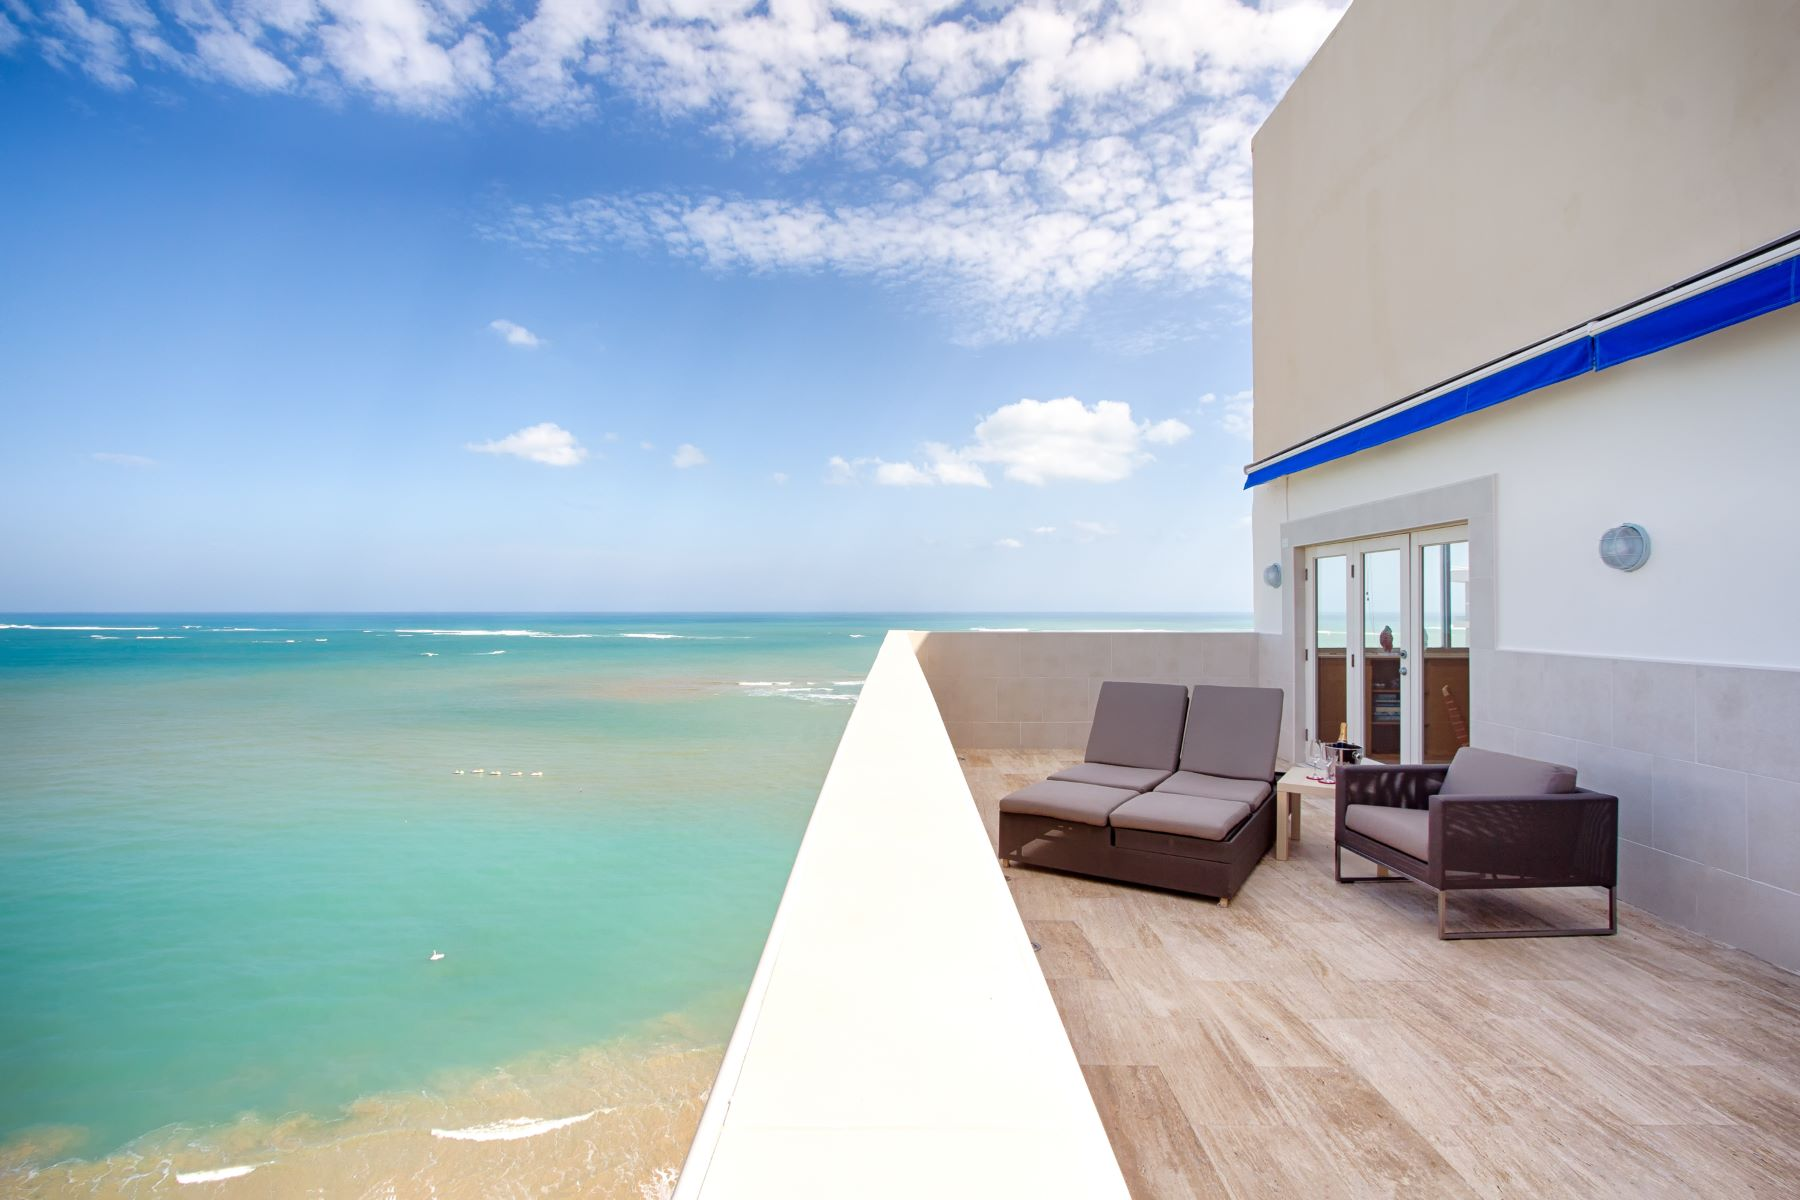 Additional photo for property listing at The Ultimate Beach Penthouse 6165 Isla Verde Ave. PH Carolina, Puerto Rico 00979 Puerto Rico